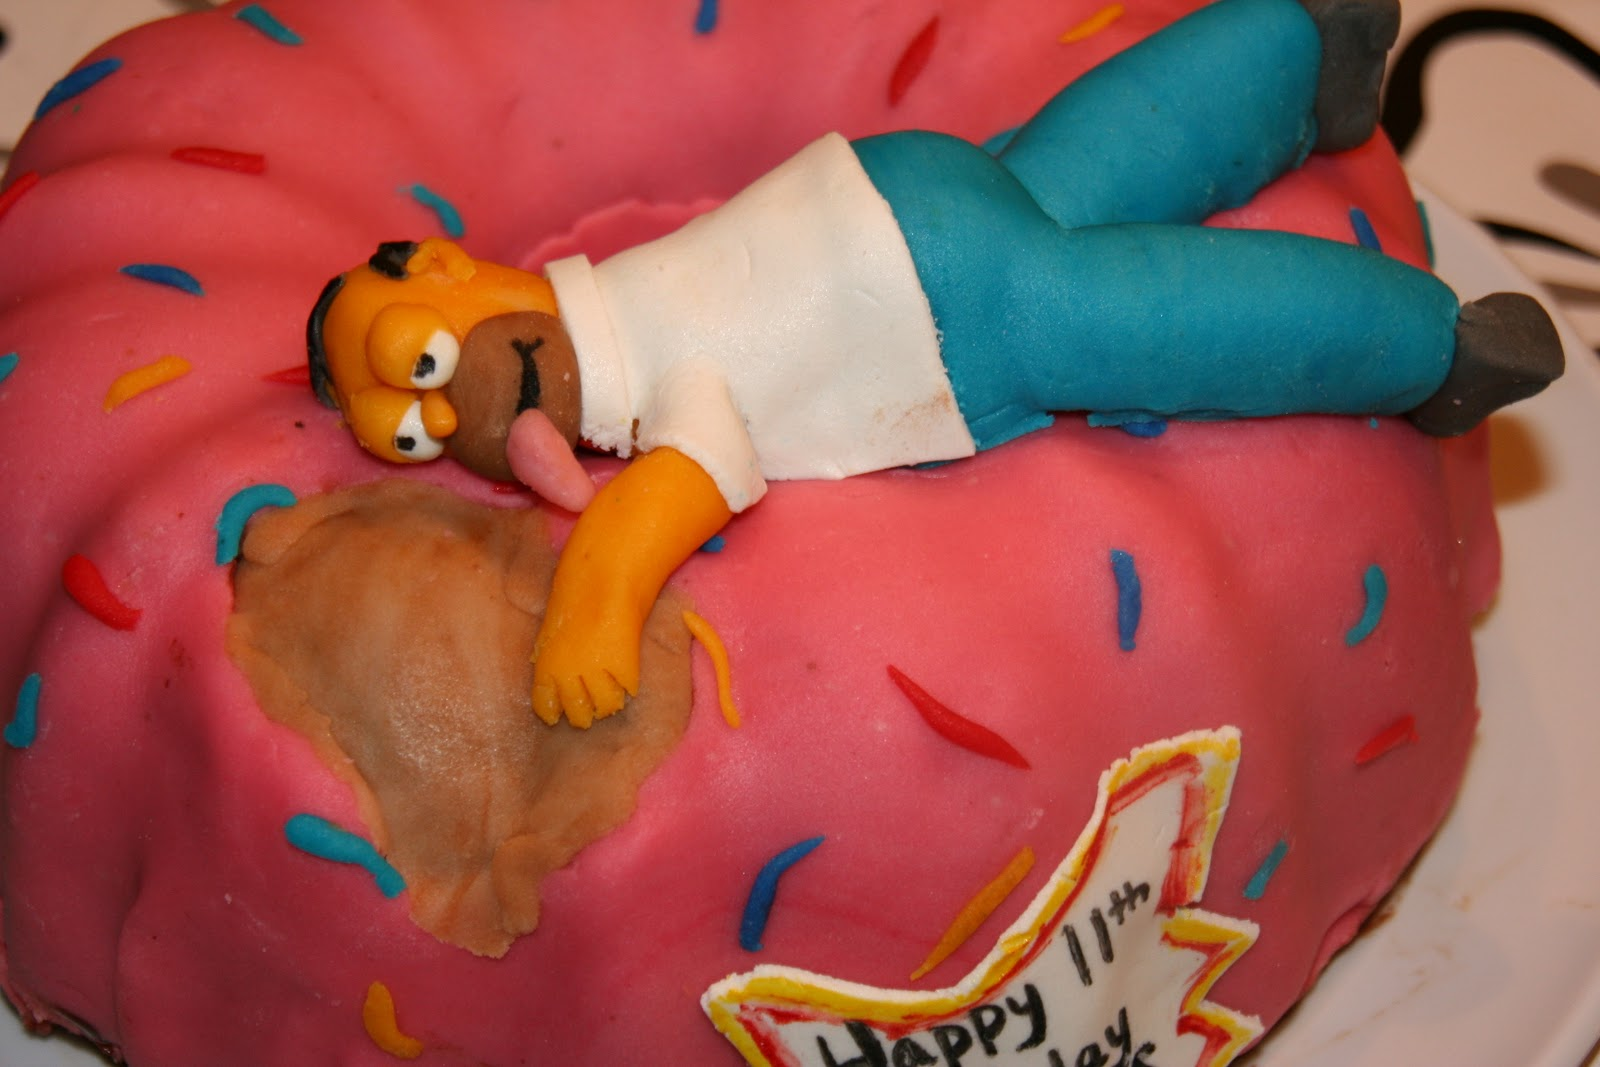 Courtney S Cookies Cakes Amp More Homer Simpson Kake